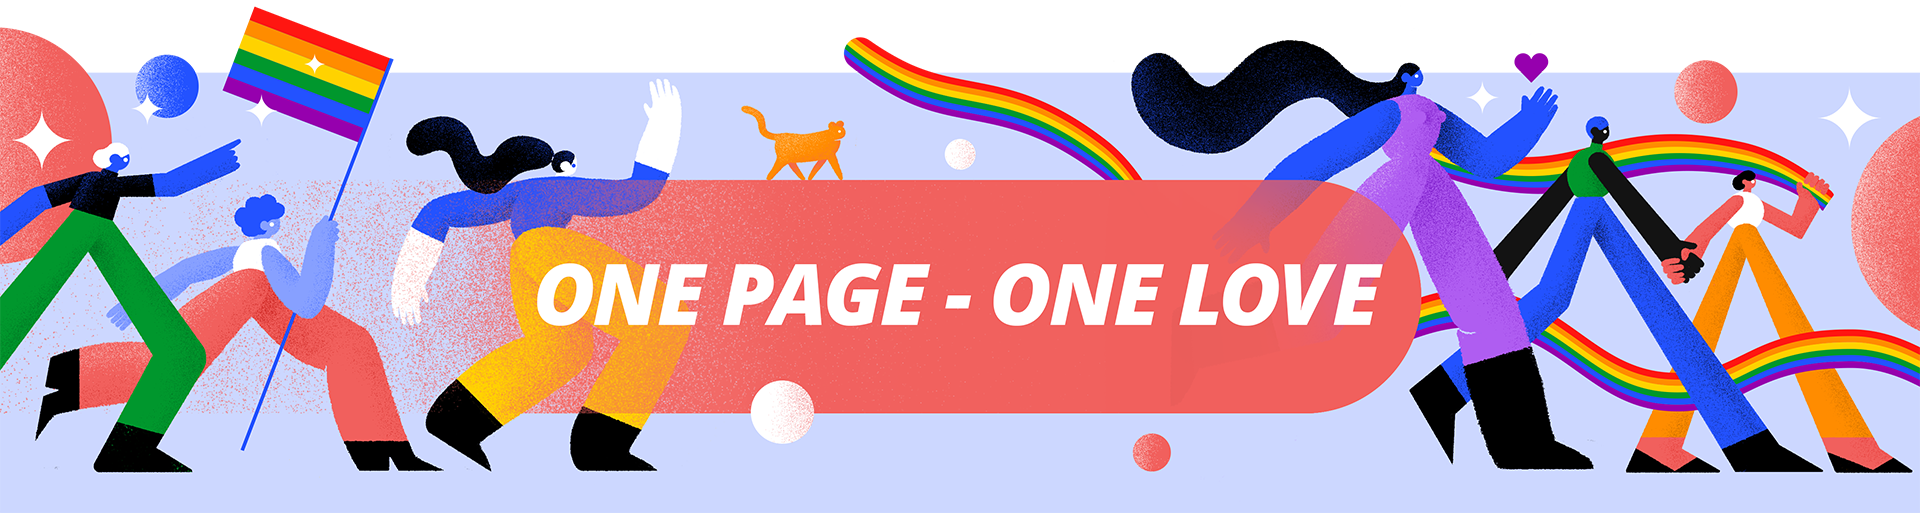 onepage_onelove_cover_2019 (fullhd).png